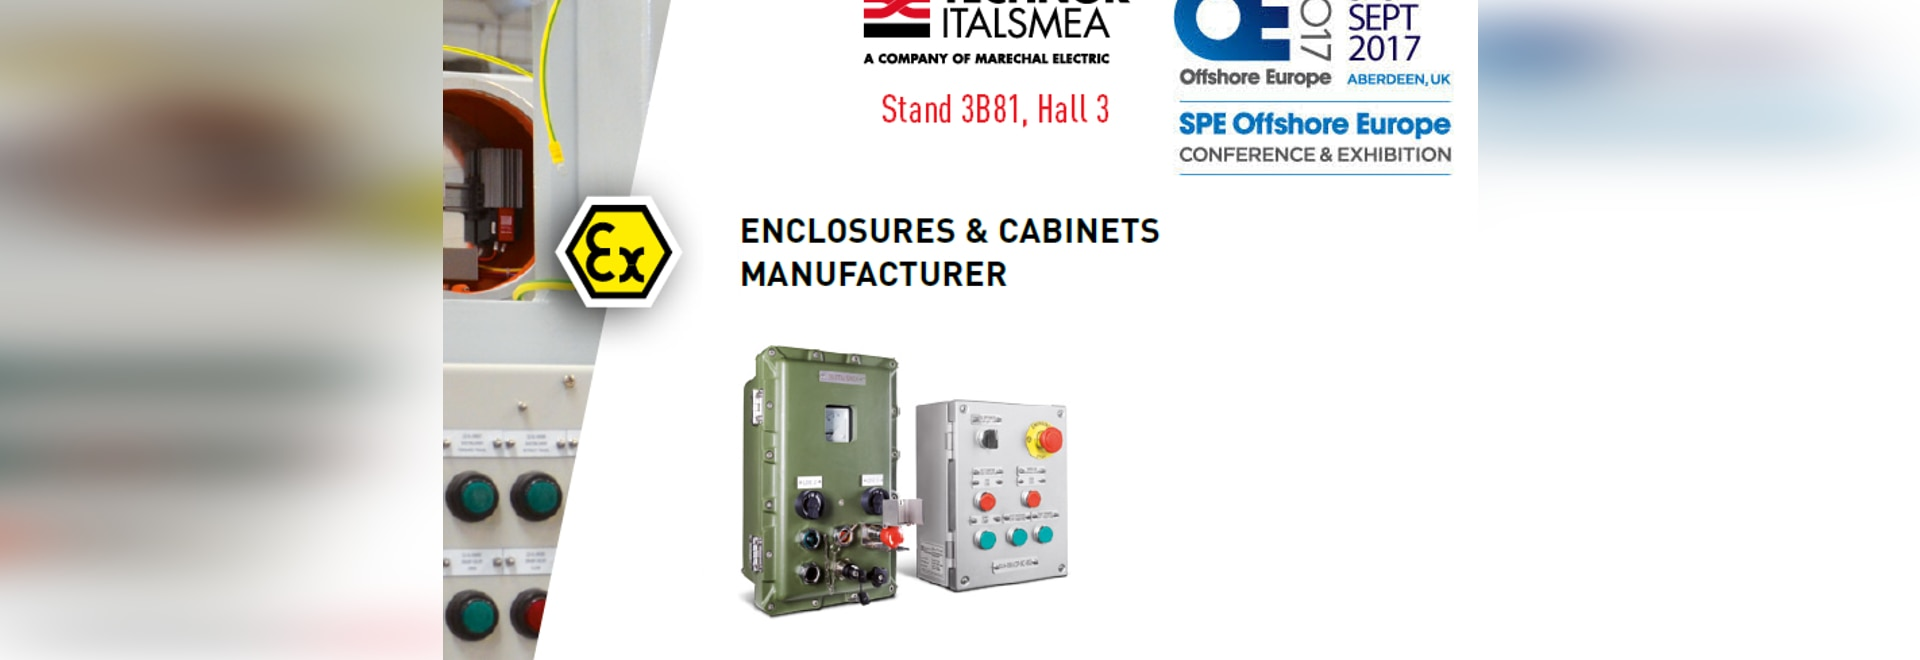 MARECHAL ELECTRIC à l'exposition SPE Offshore Europe 2017